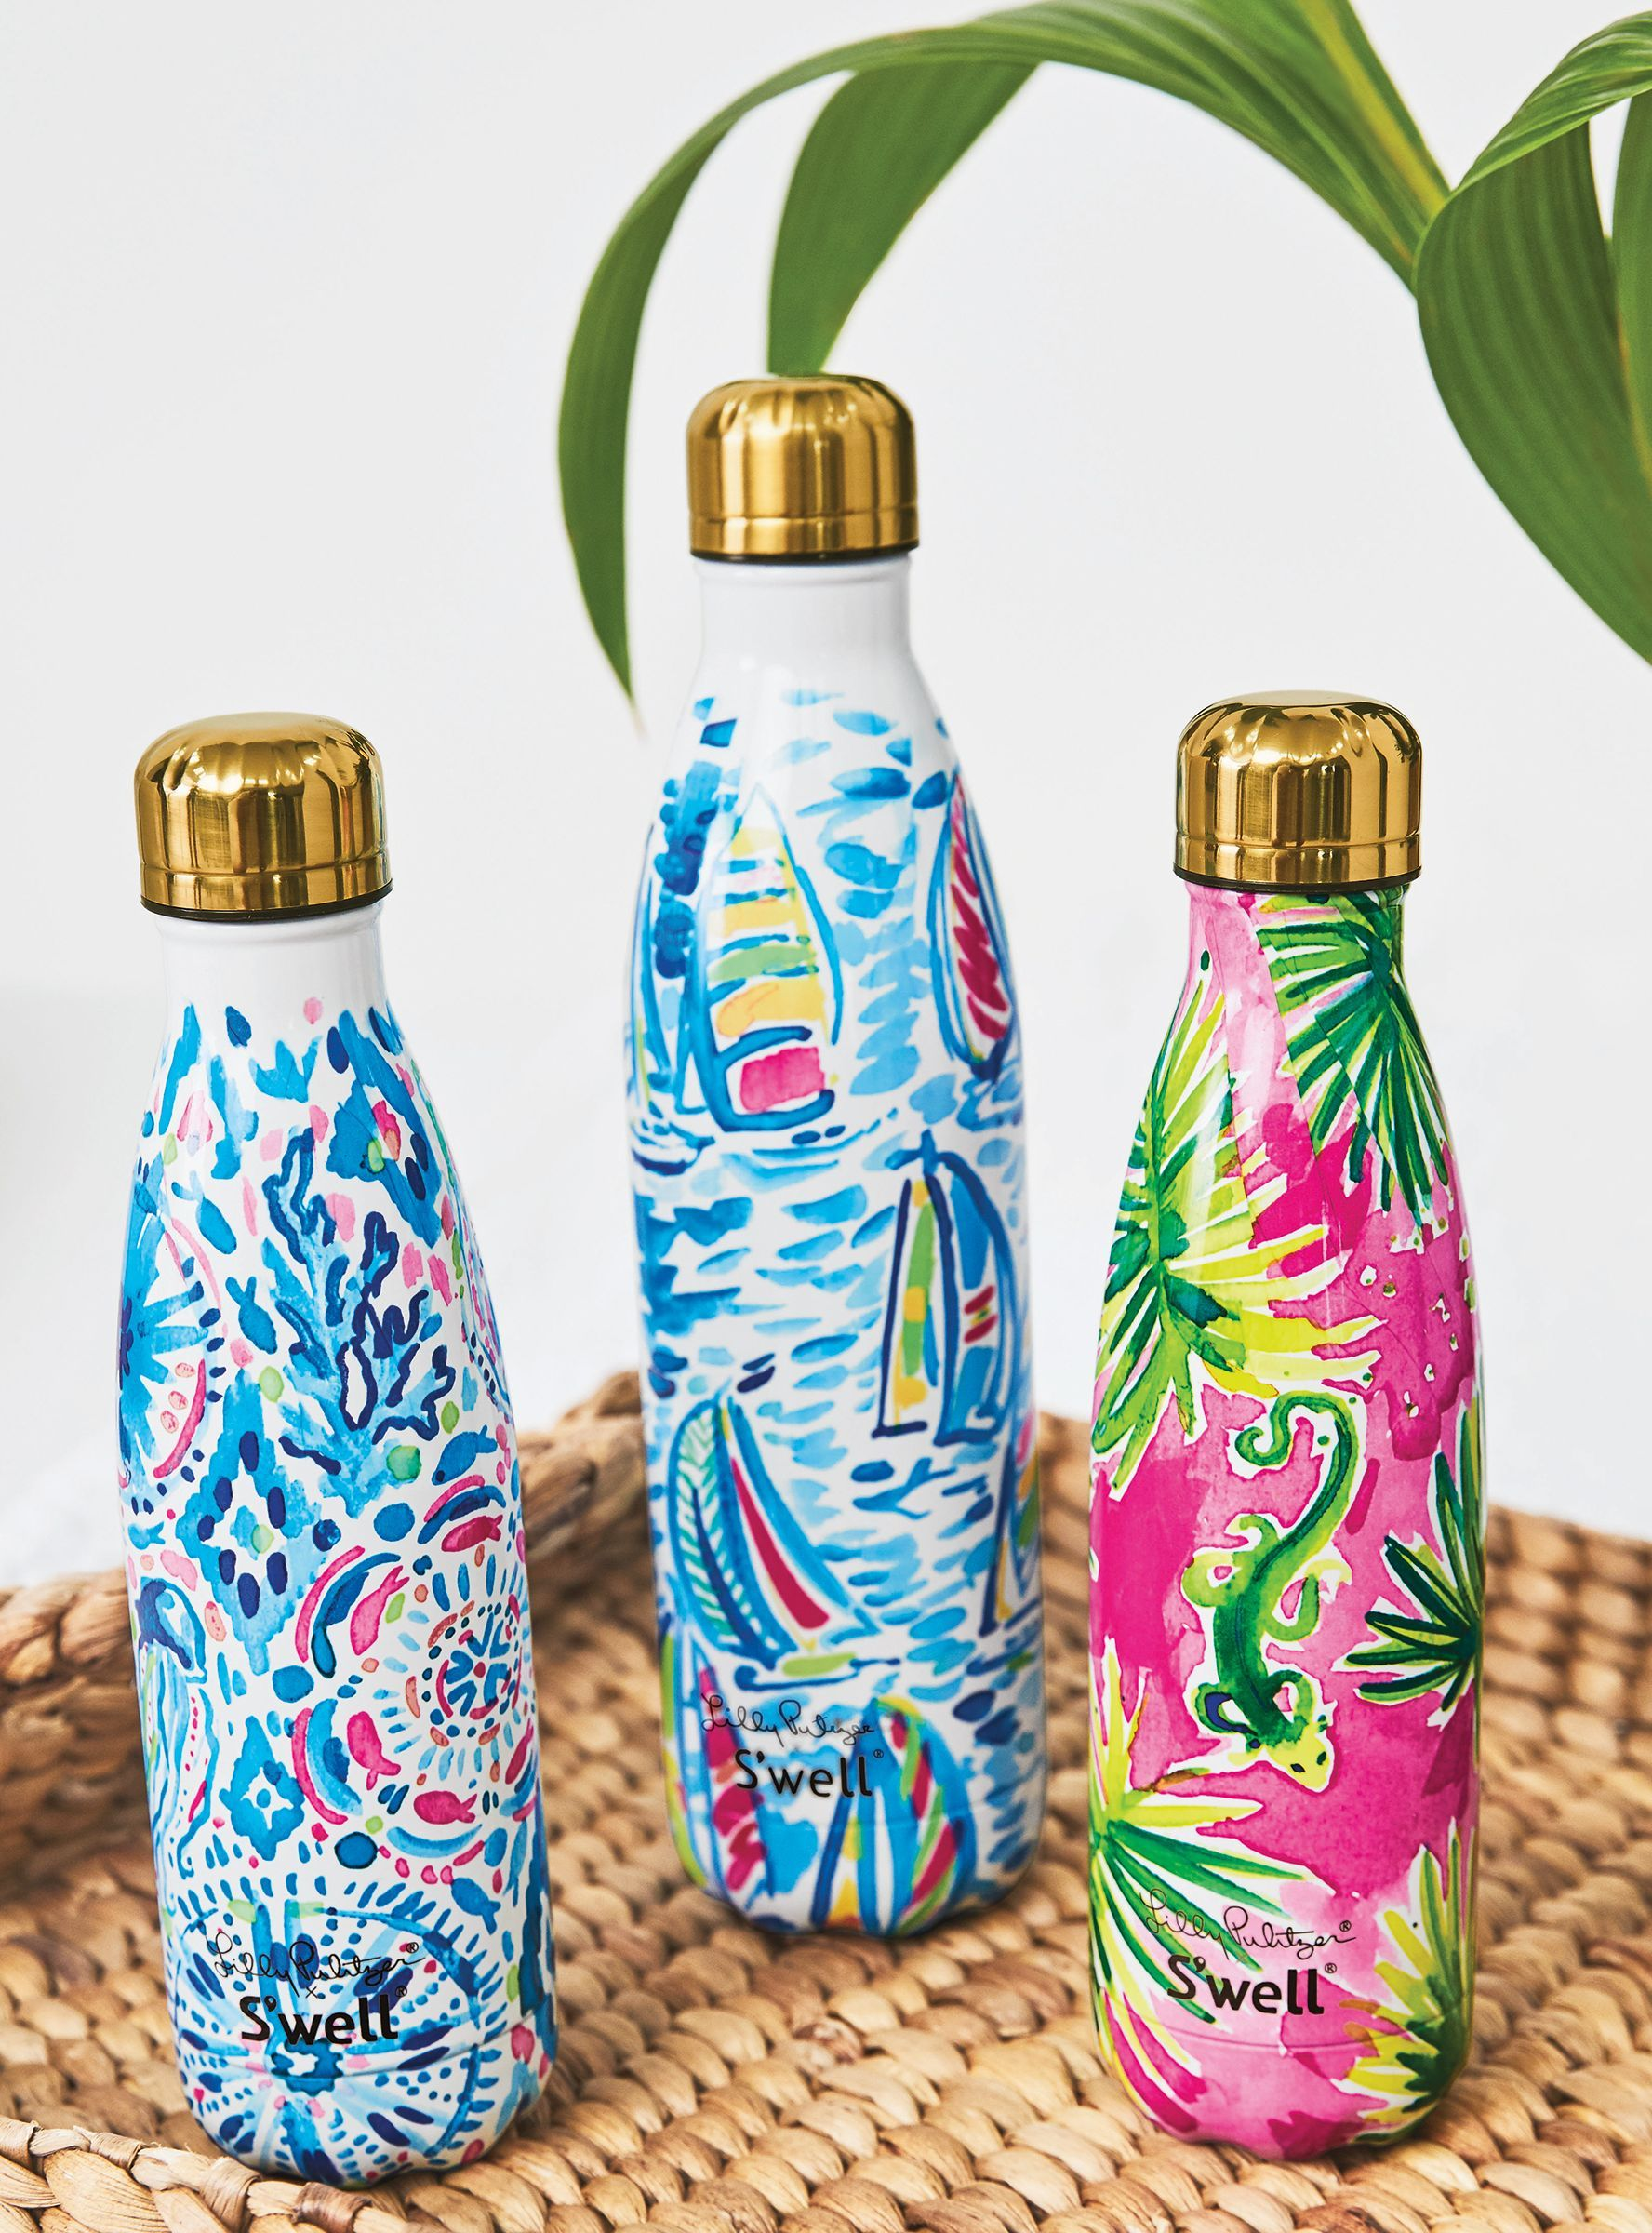 30676b8d09 Lilly Pulitzer Just Dropped 3 New S'well Bottles & We're Adding Them ...